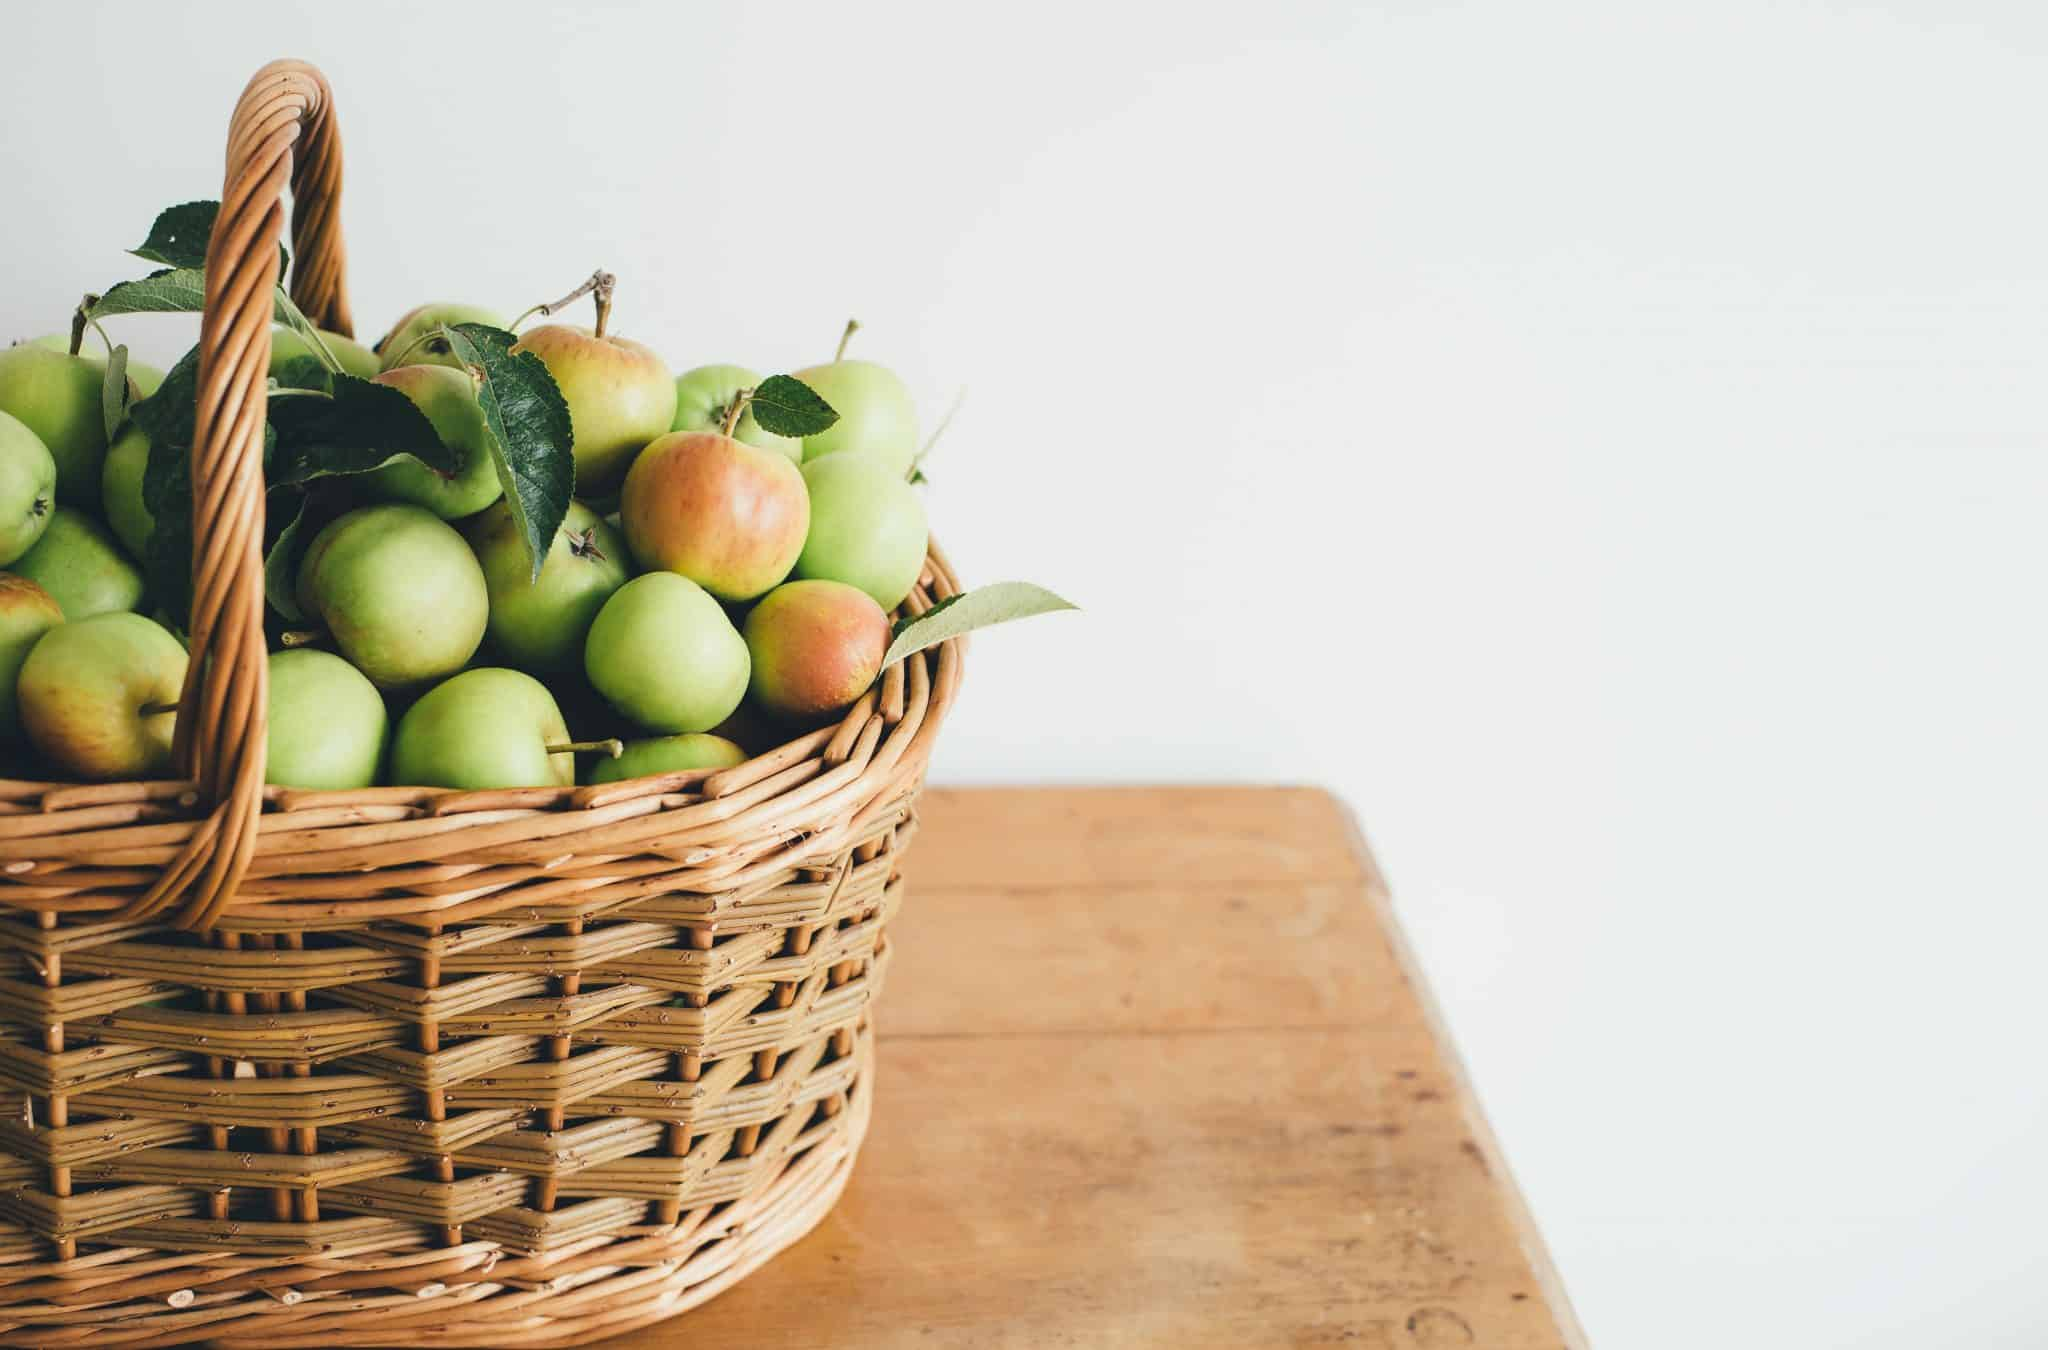 Windfall Basket of Apples on a table